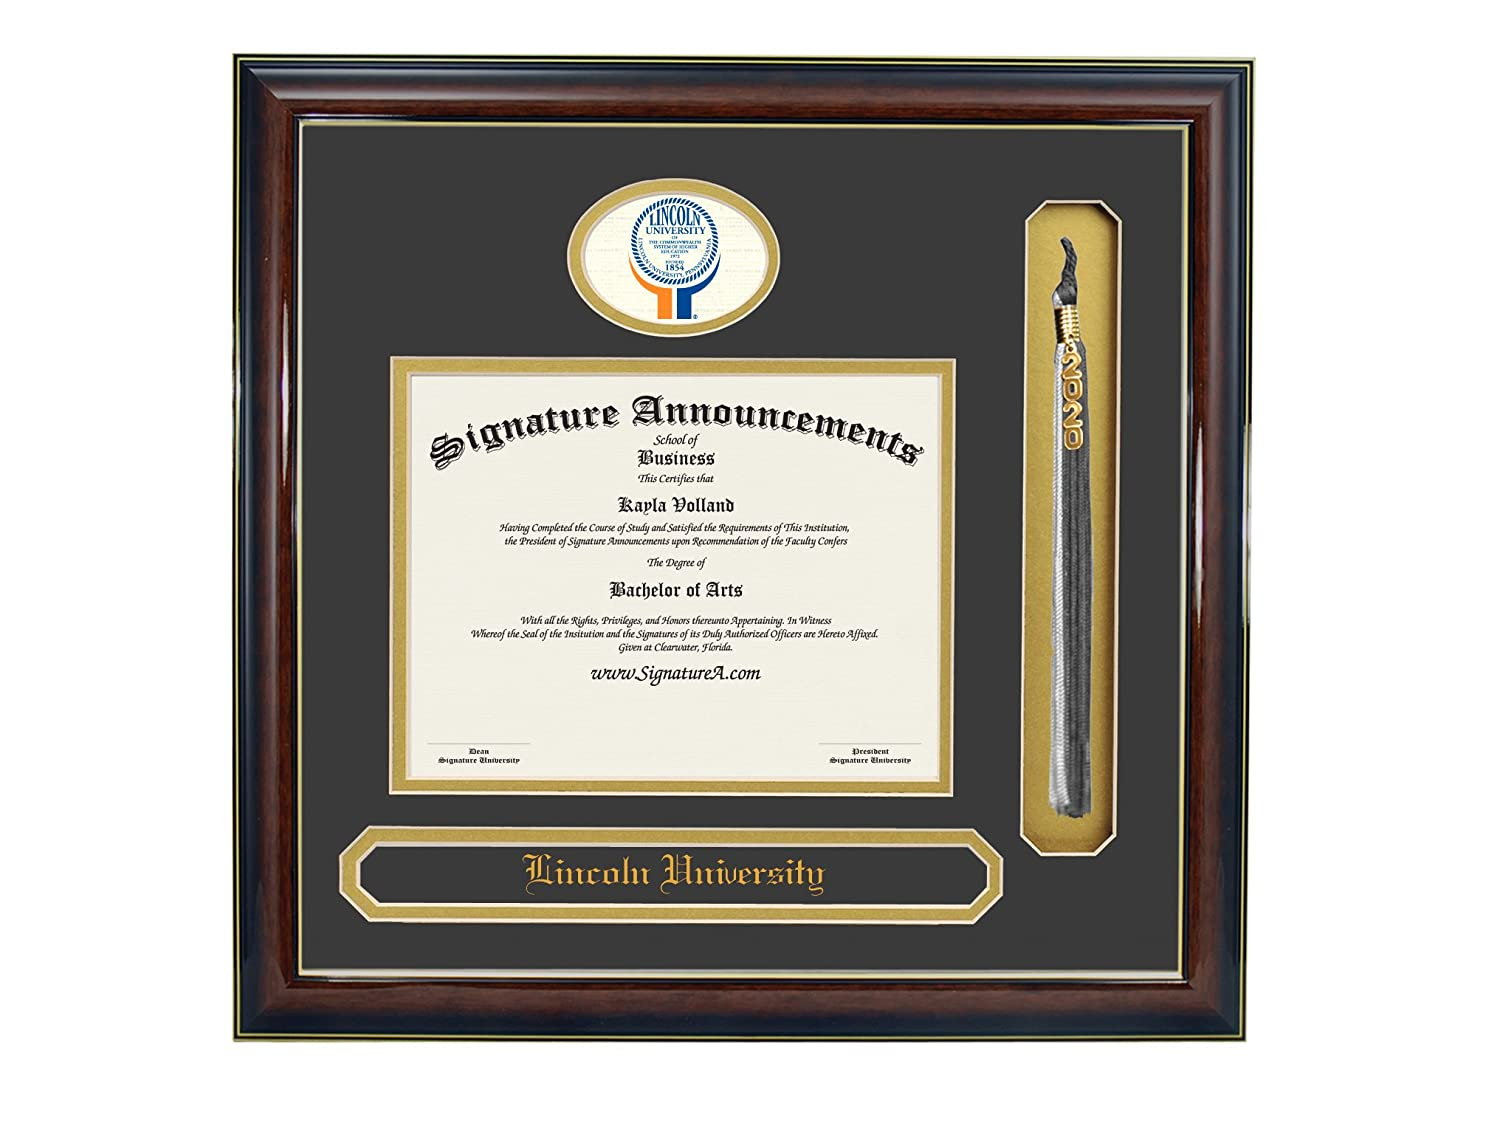 16 x 16 Signature Announcements Lincoln-University-of-Pennsylvania Undergraduate Professional//Doctor Sculpted Foil Seal Gold Accent Gloss Mahogany Name /& Tassel Graduation Diploma Frame